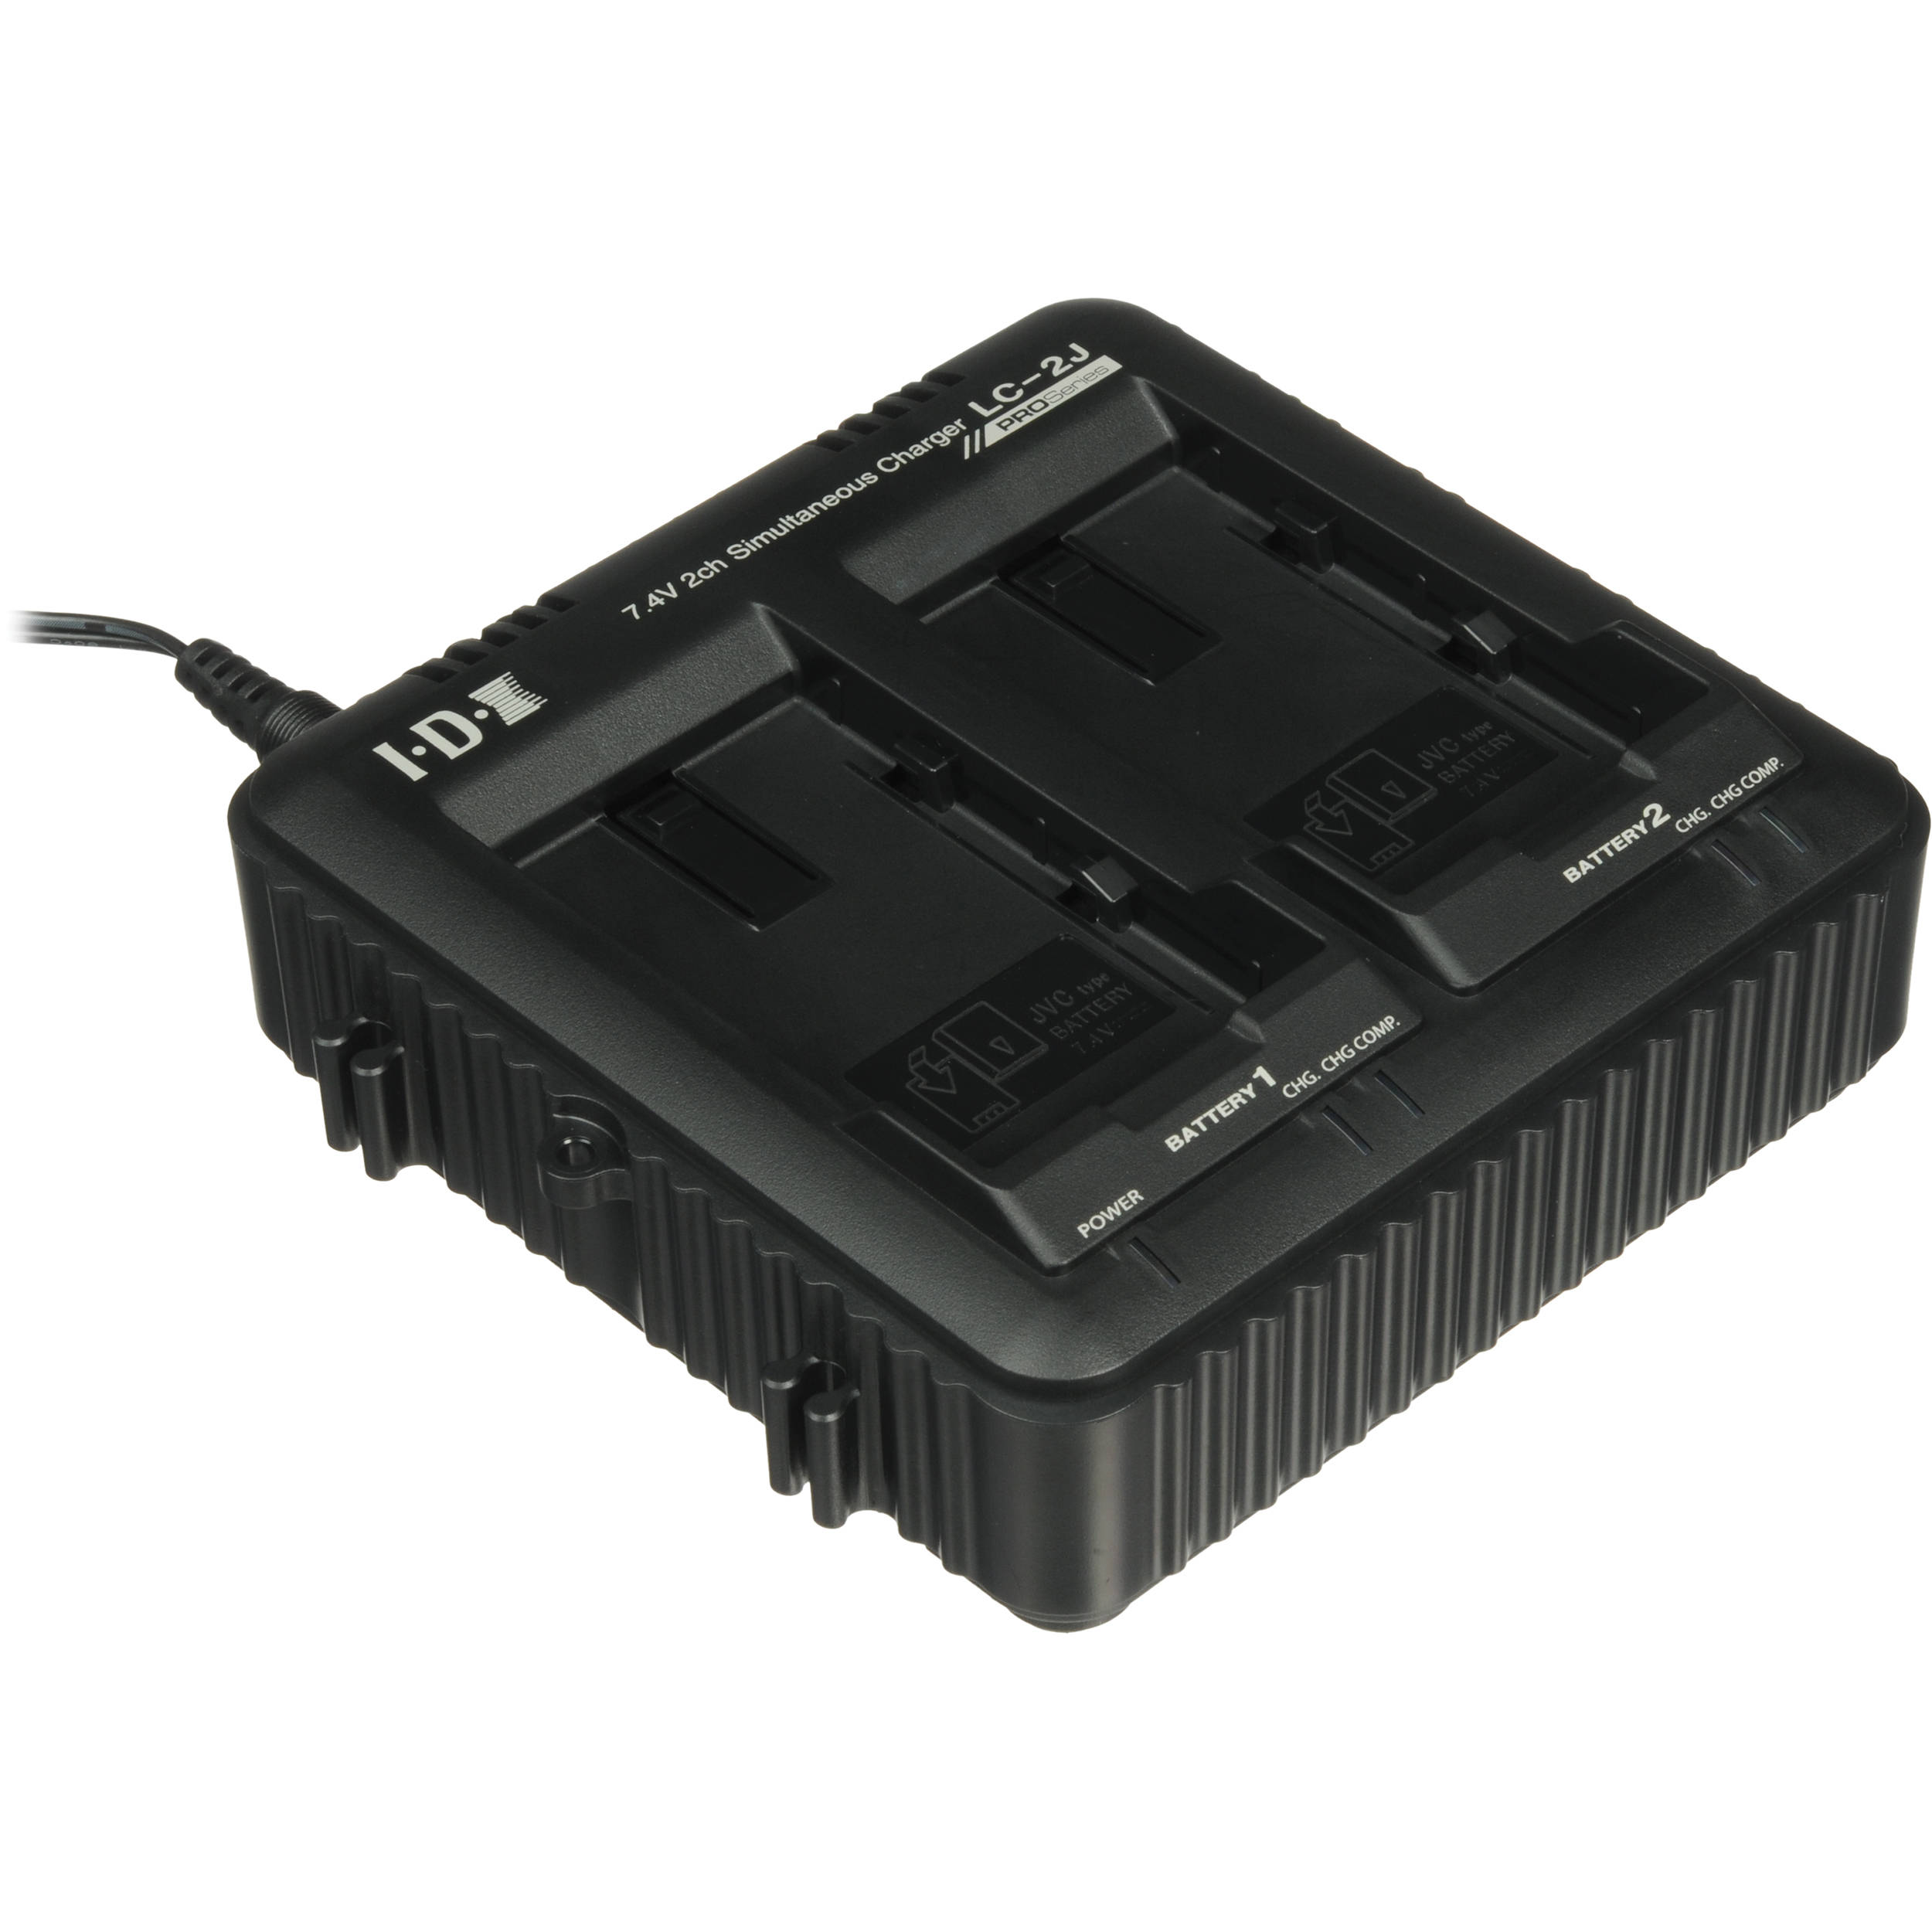 2 CHANNEL CHARGER FOR SSL-JVC50/75 LITHIUM ION BATTERY